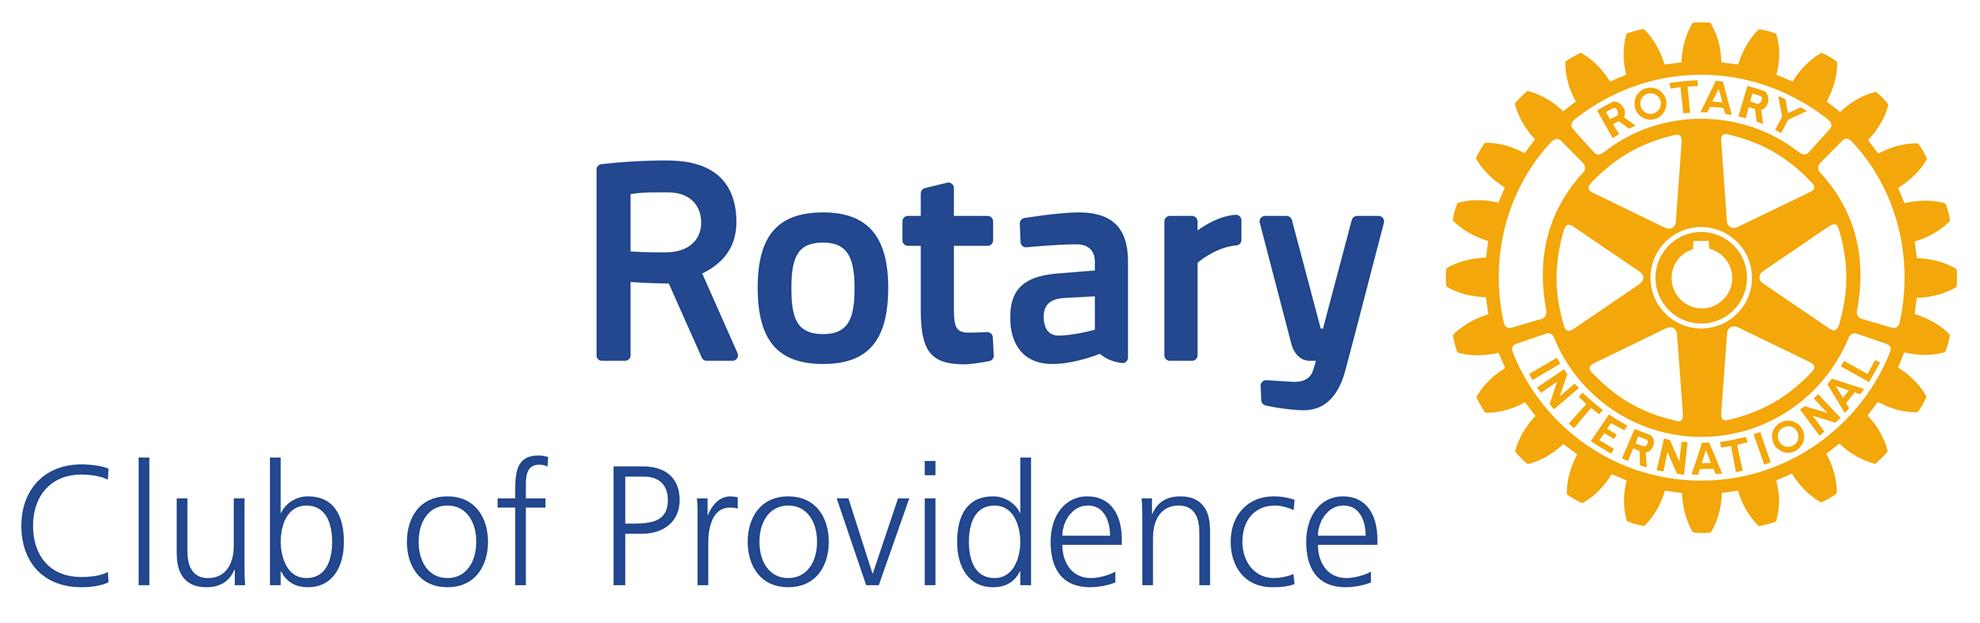 Rotary Club of Providence